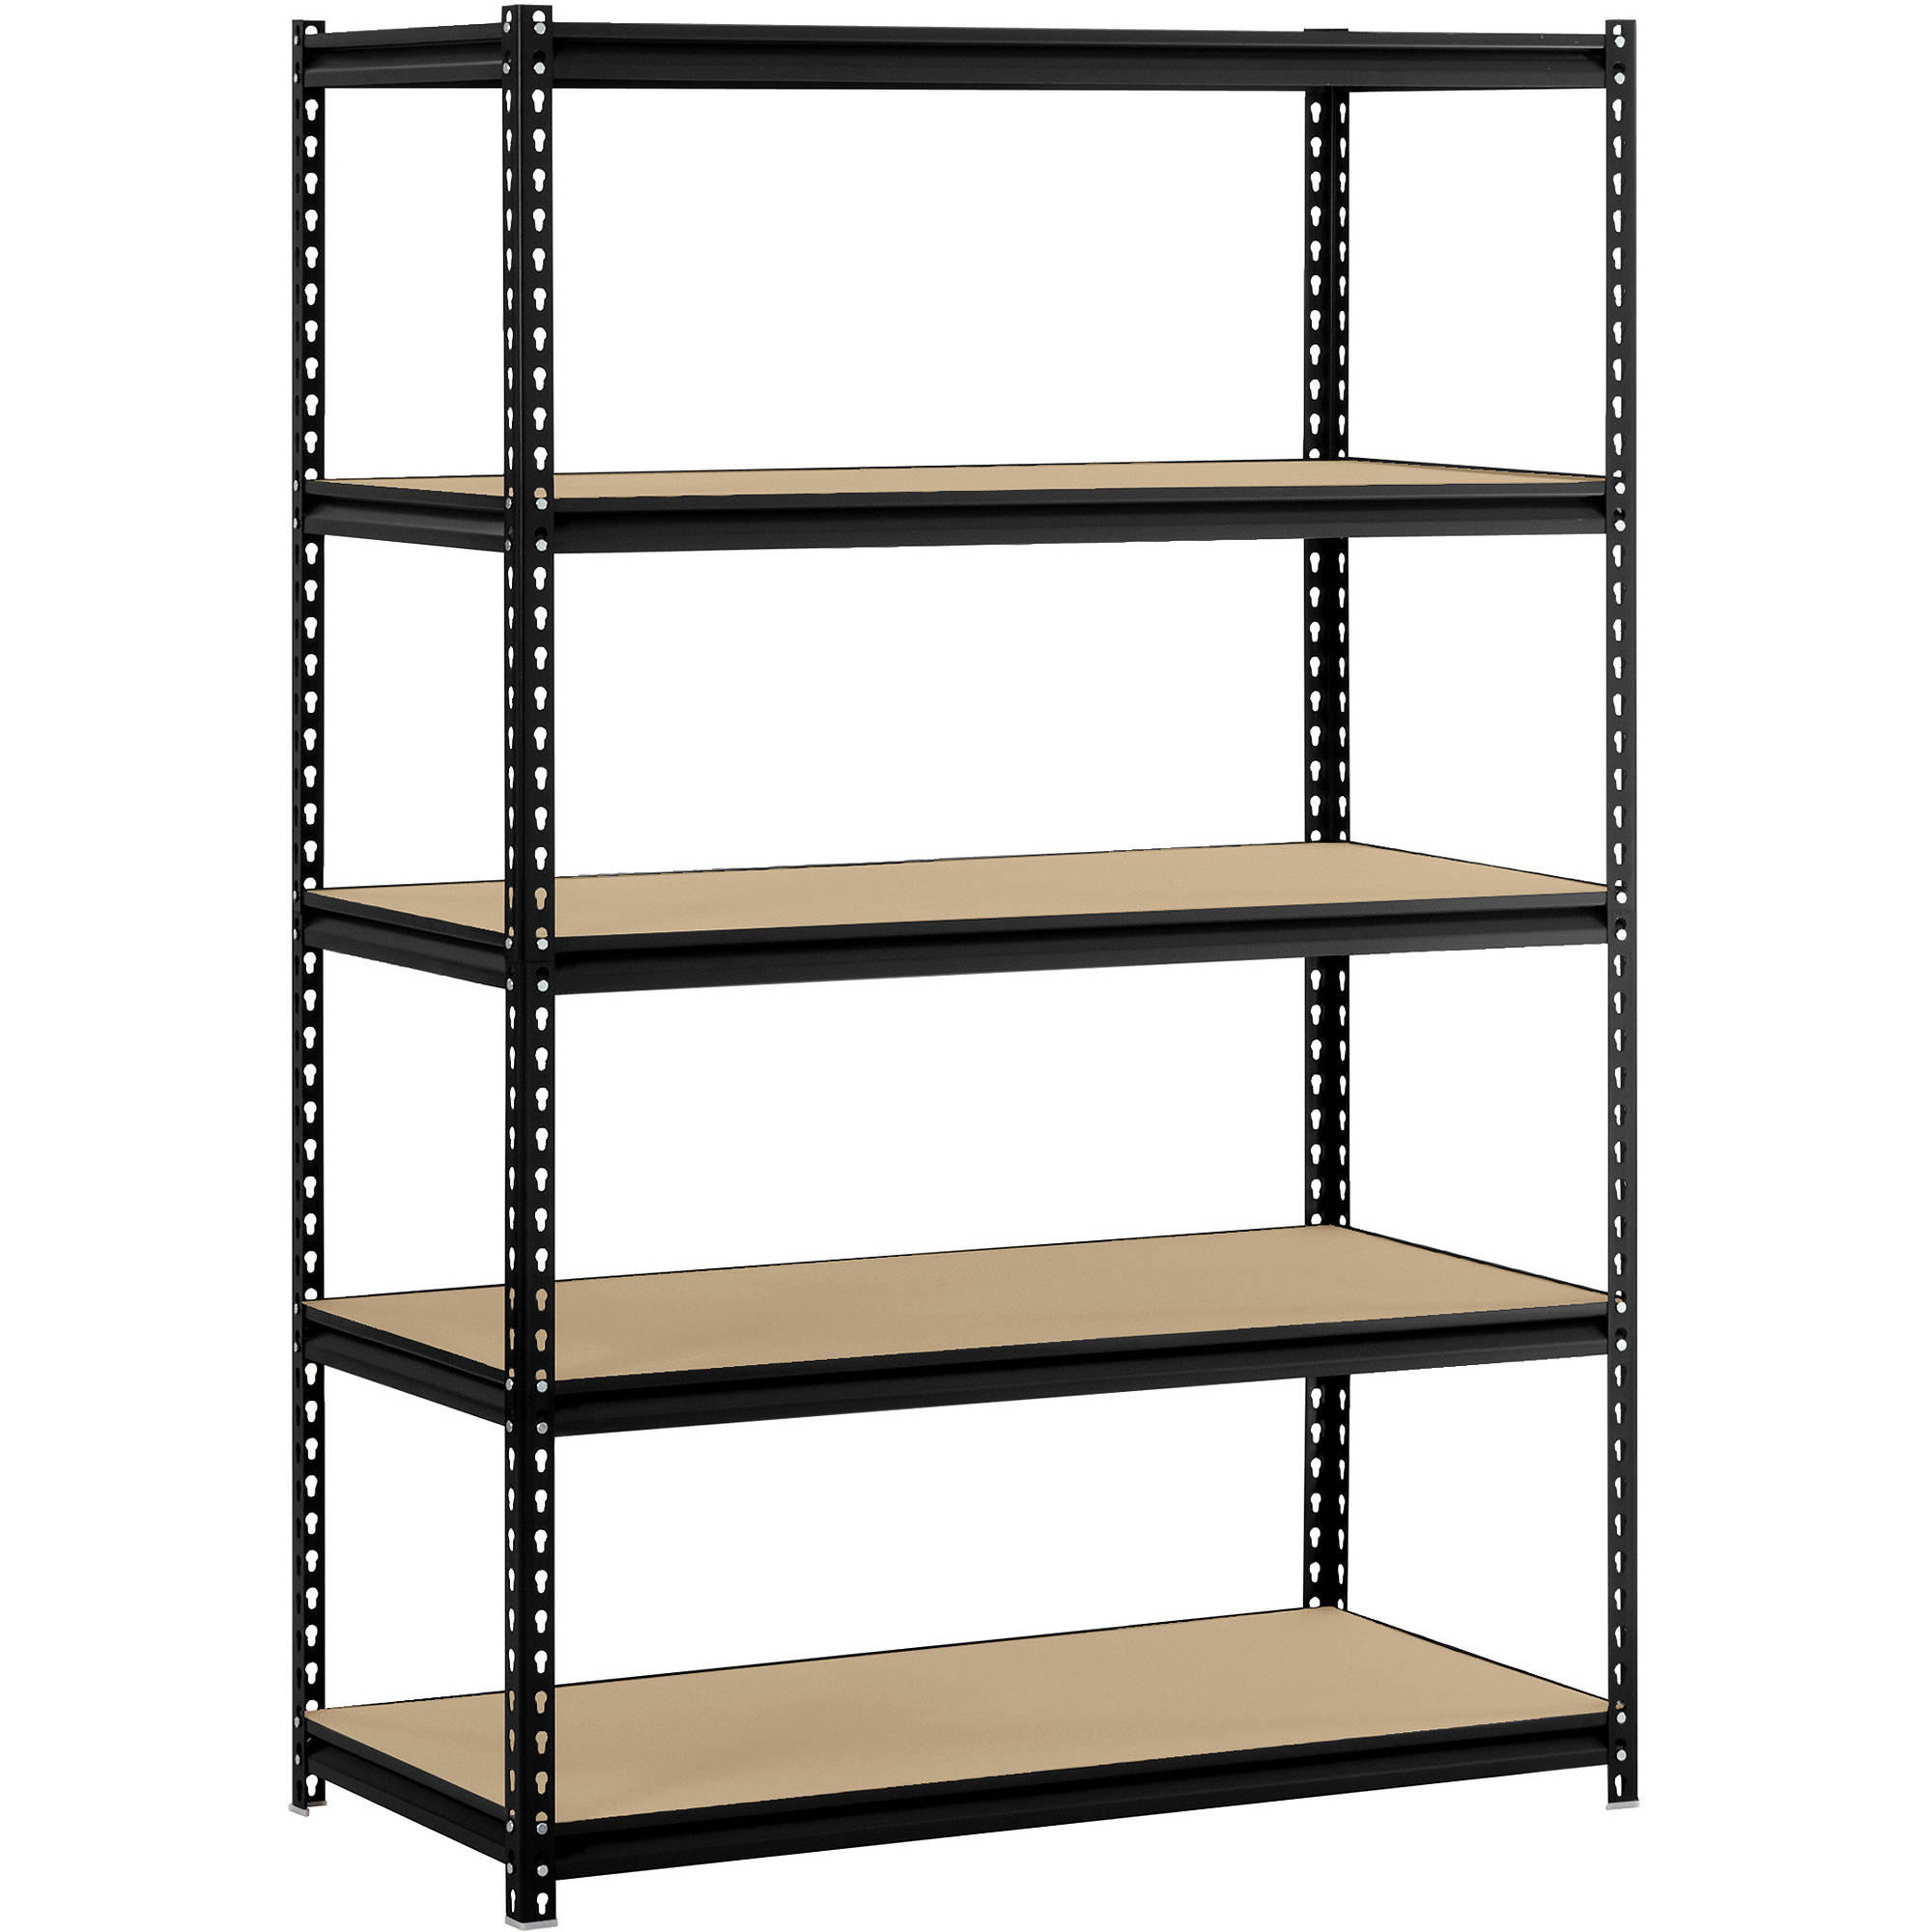 roll pull pic warehouse shelves racks industrial products rack feature product shelf pallet out shelving storage